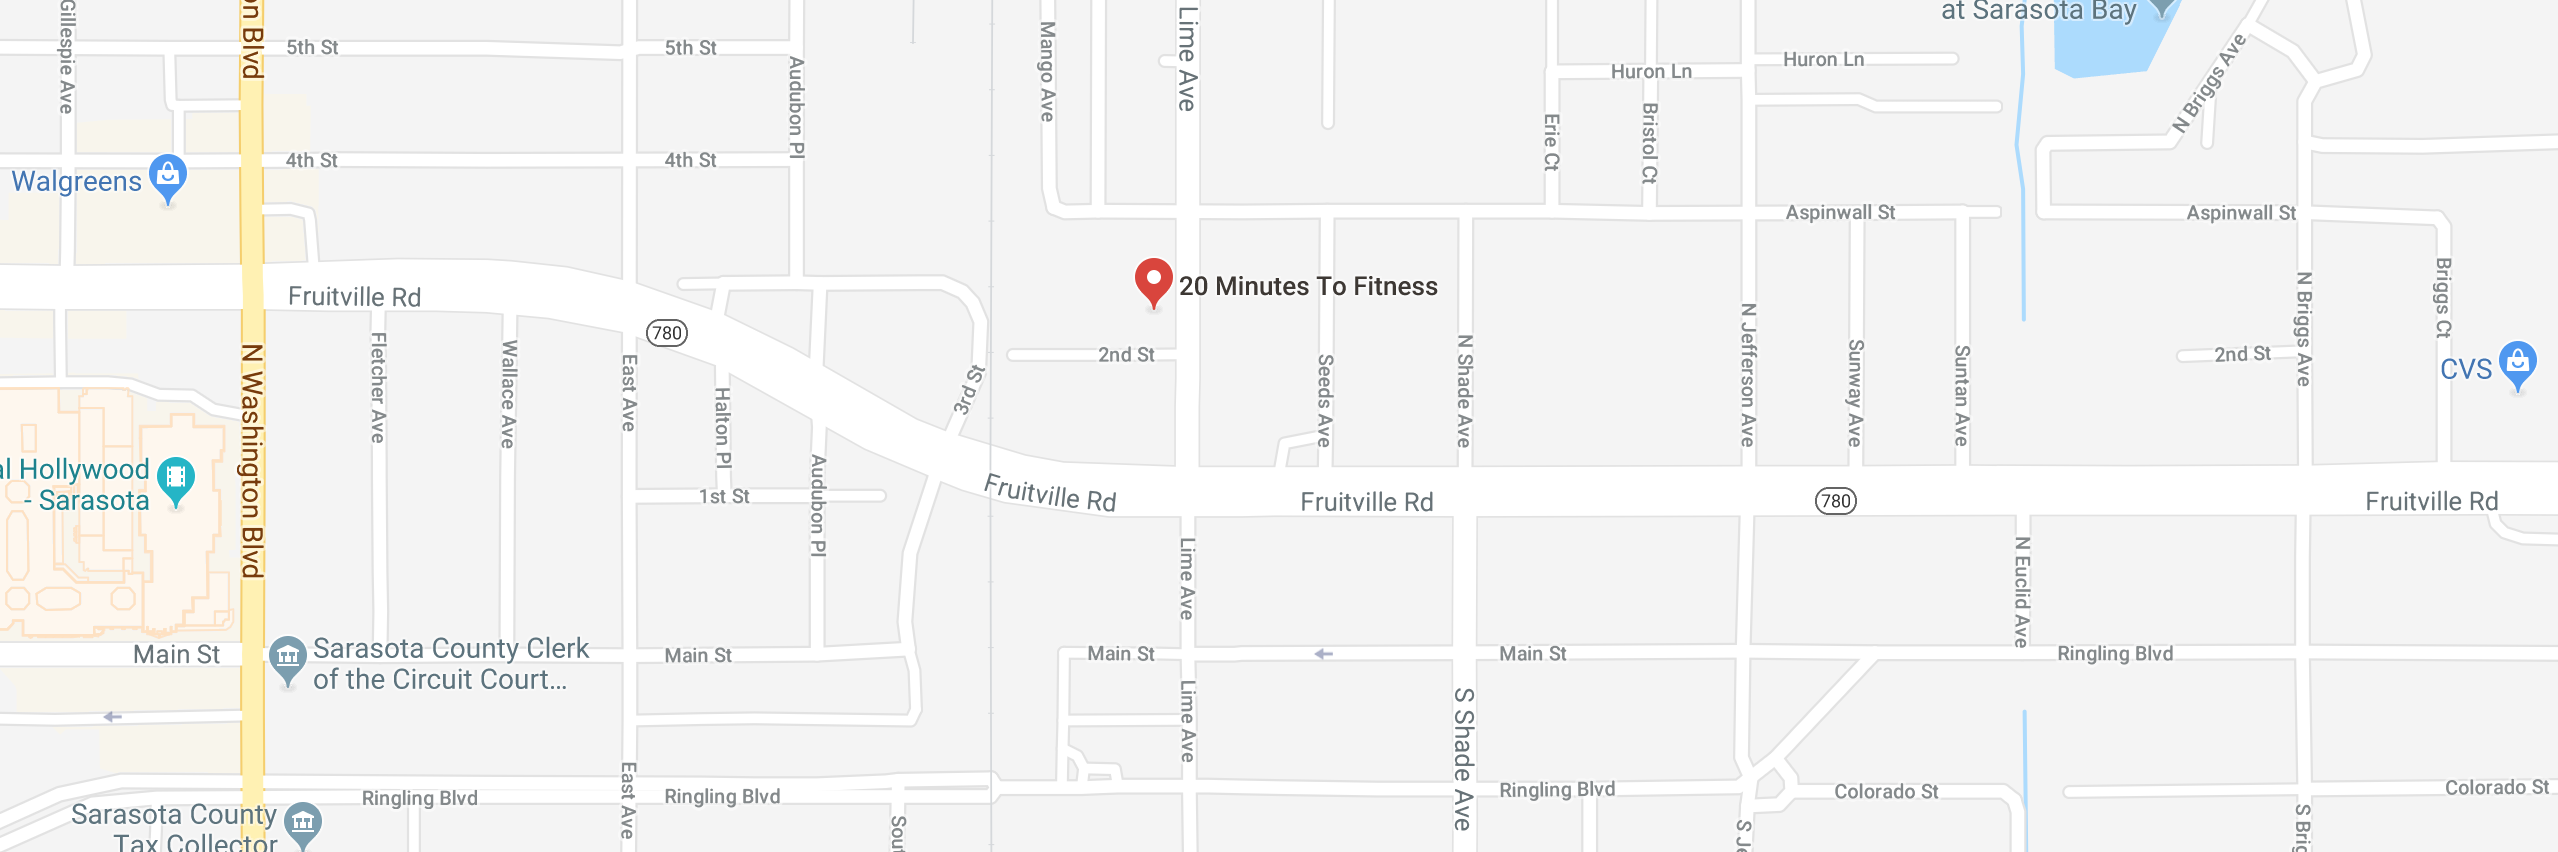 20 Minutes to Fitness - Sarasota - Downtown